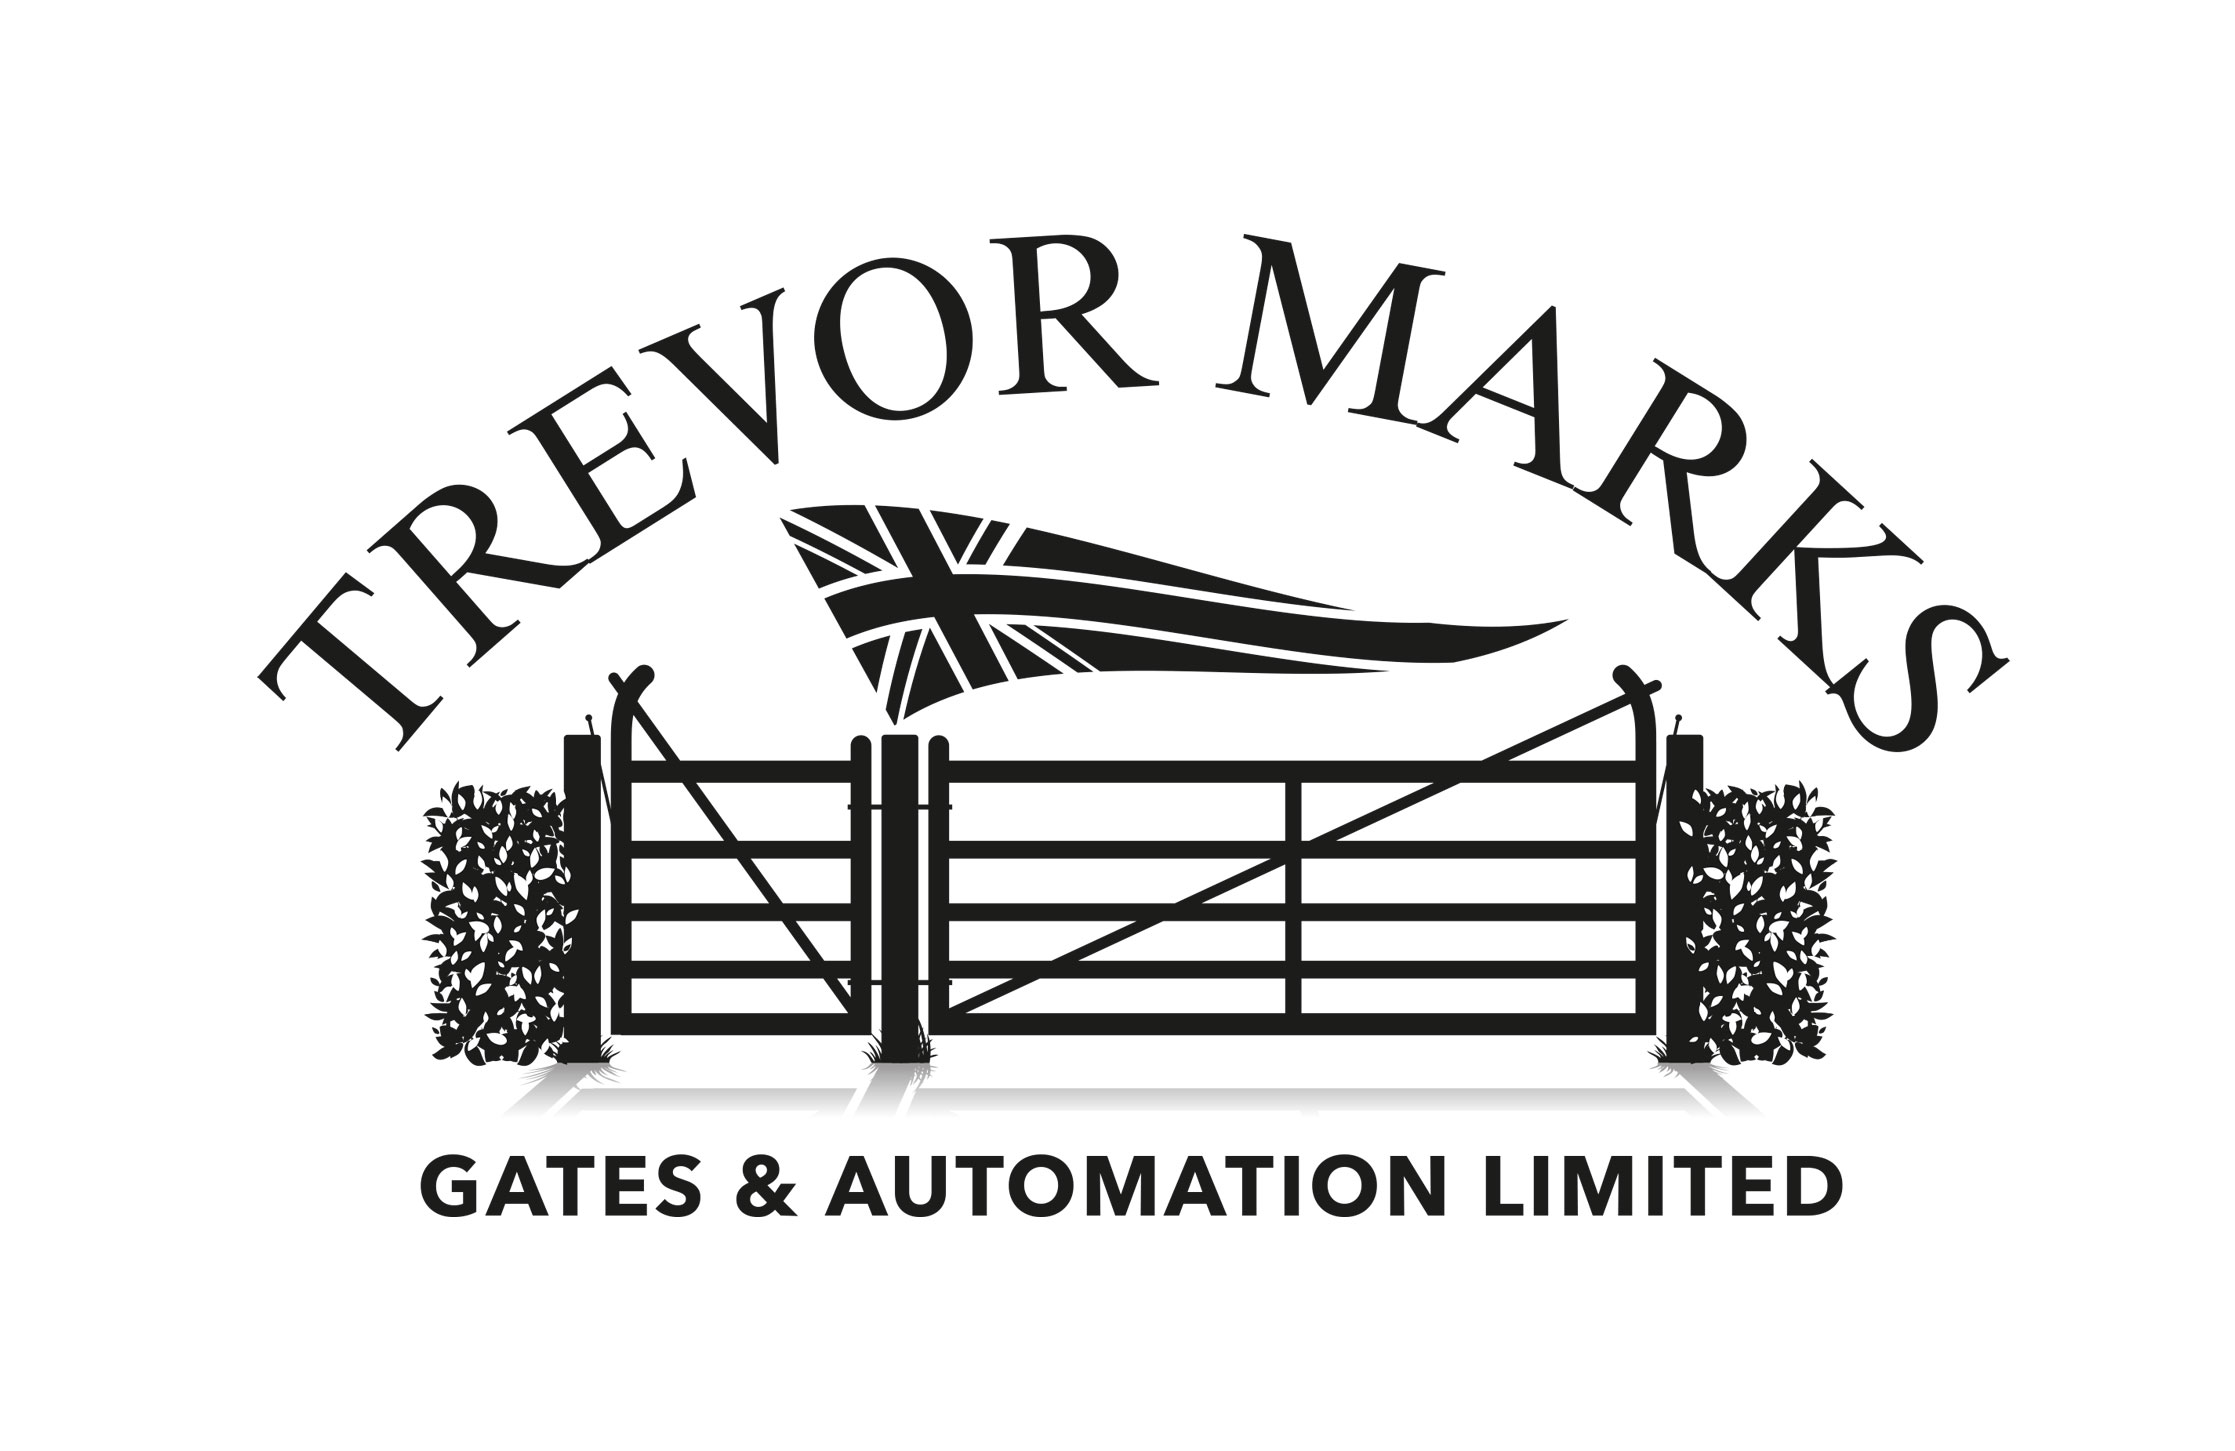 Trevor Marks bespoke gates and automation limited logo design